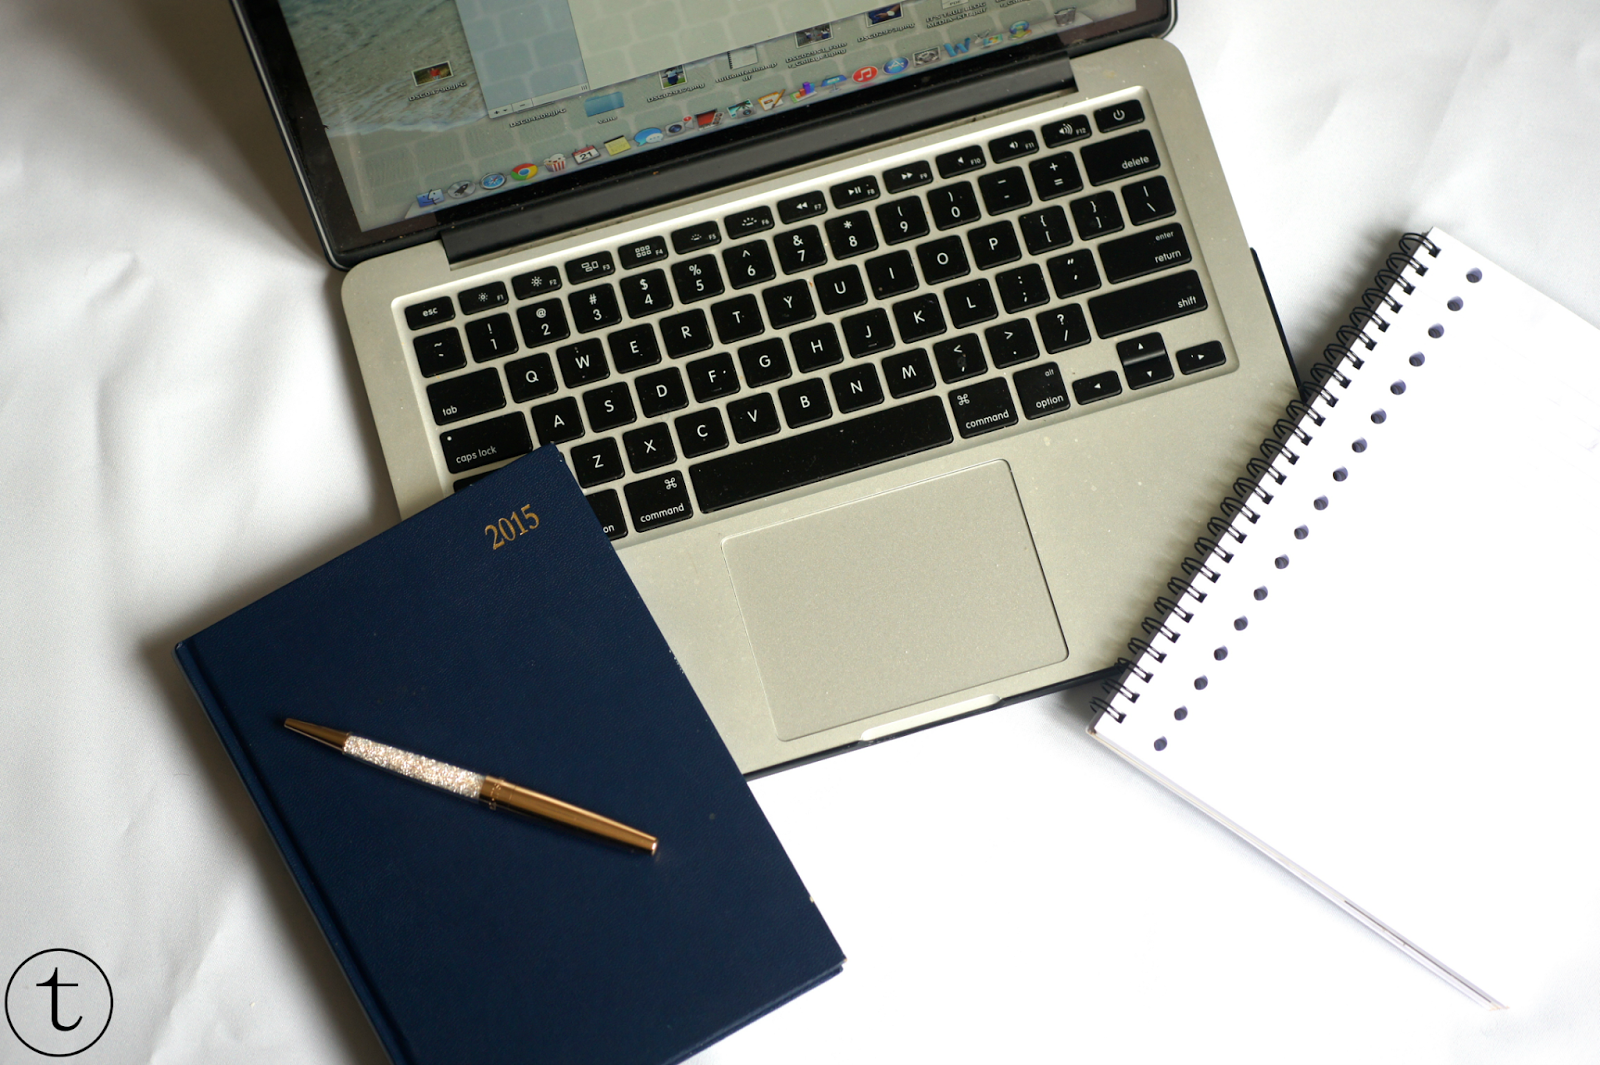 how to approach pr agencies / brands as a blogger macbook pro